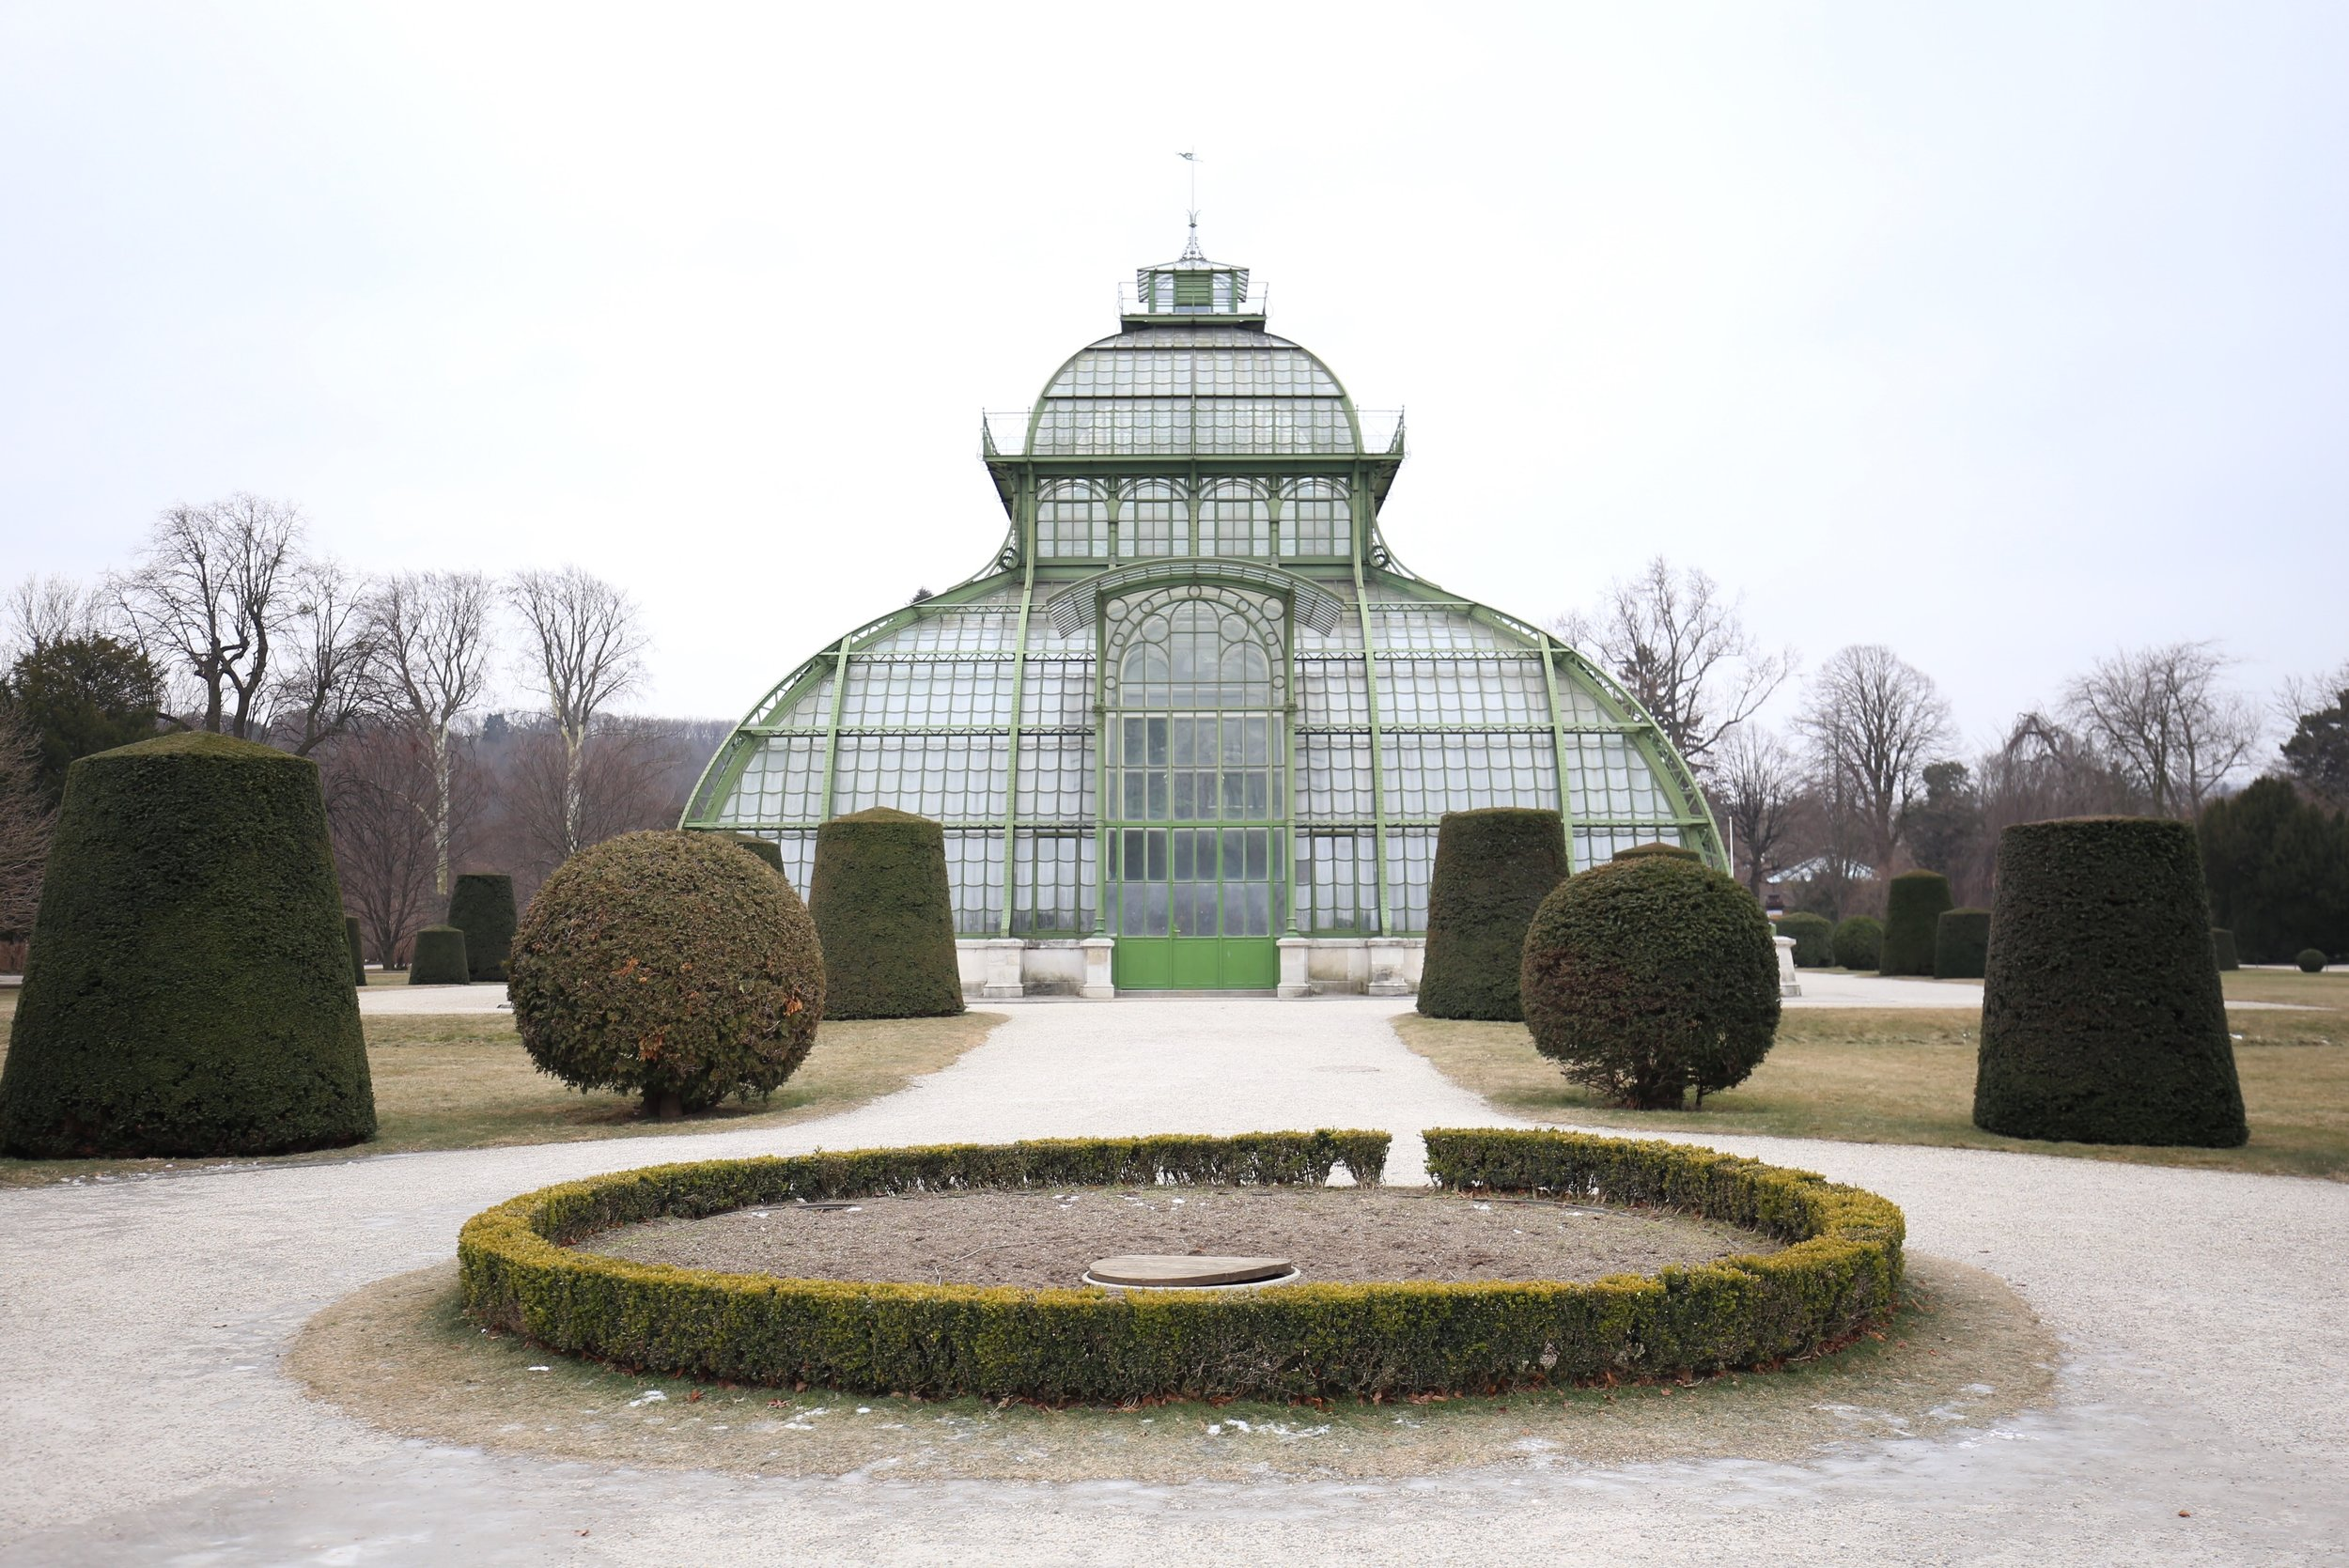 glasshouse and topiaries